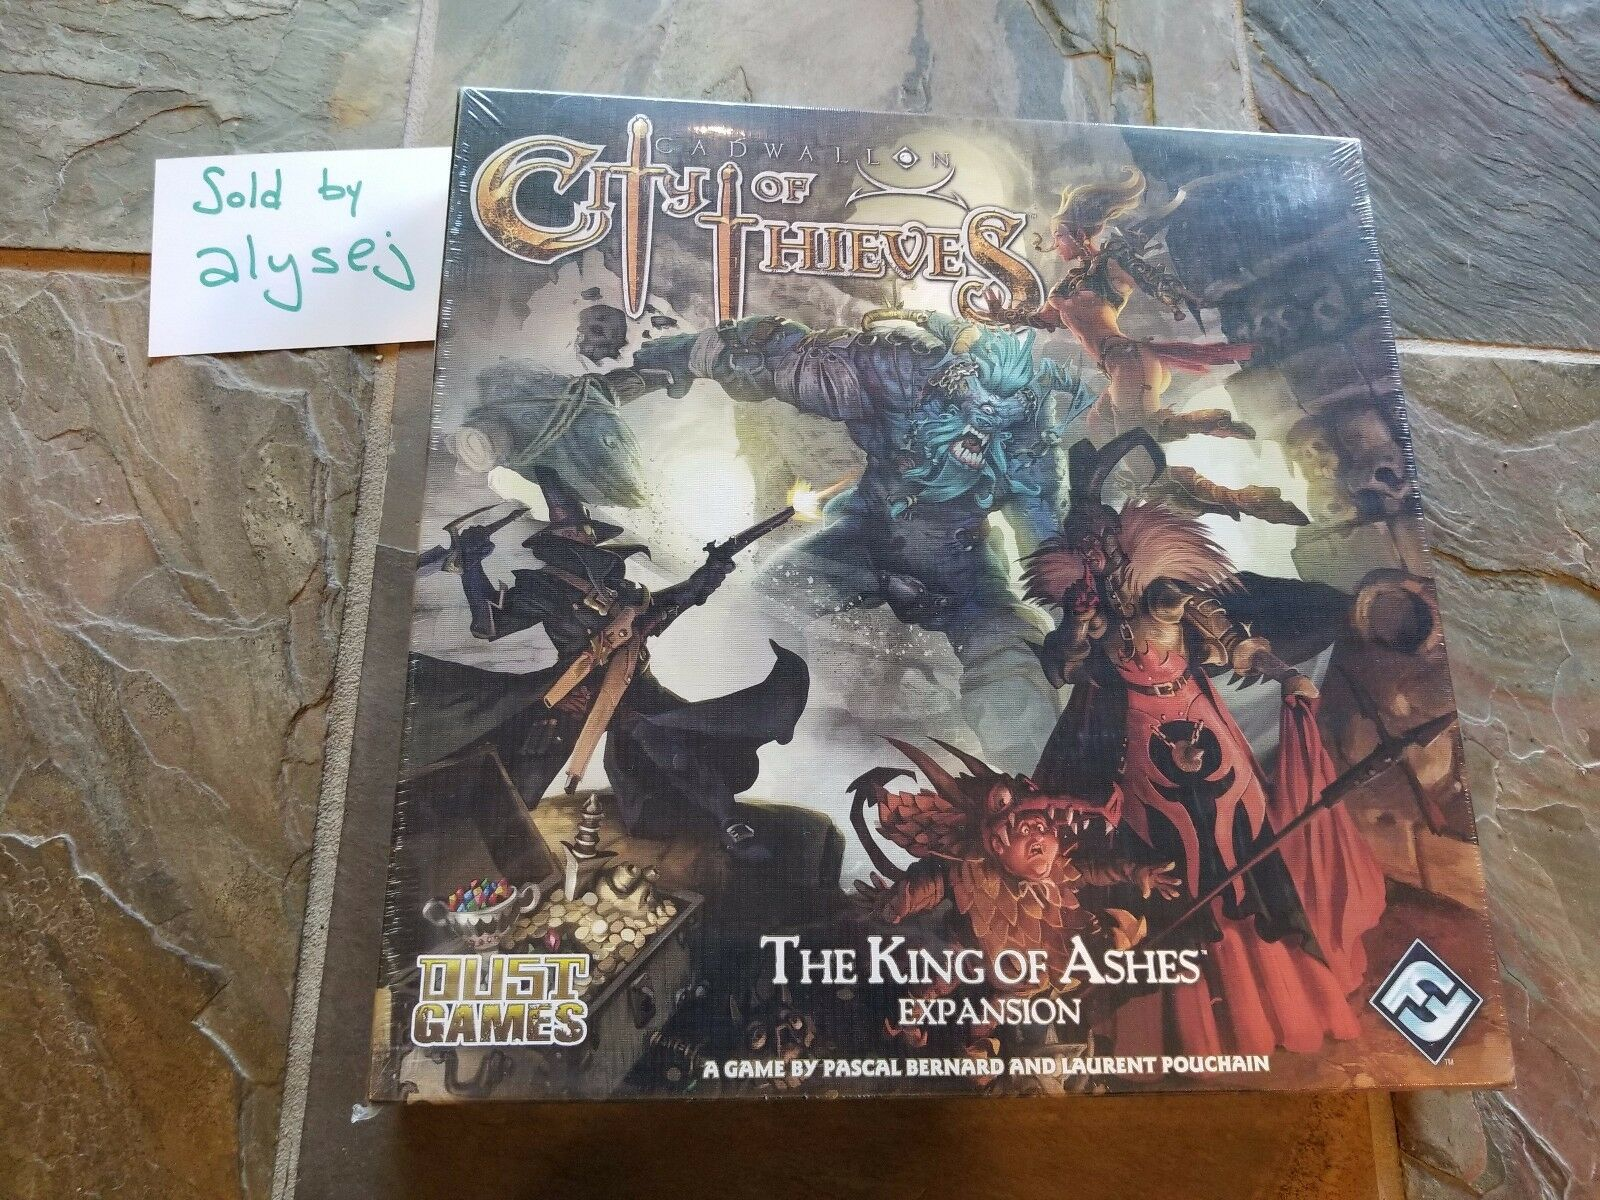 Cadwallon City of Thieves  The King of Ashes FFG Games Board Game New Ships Free